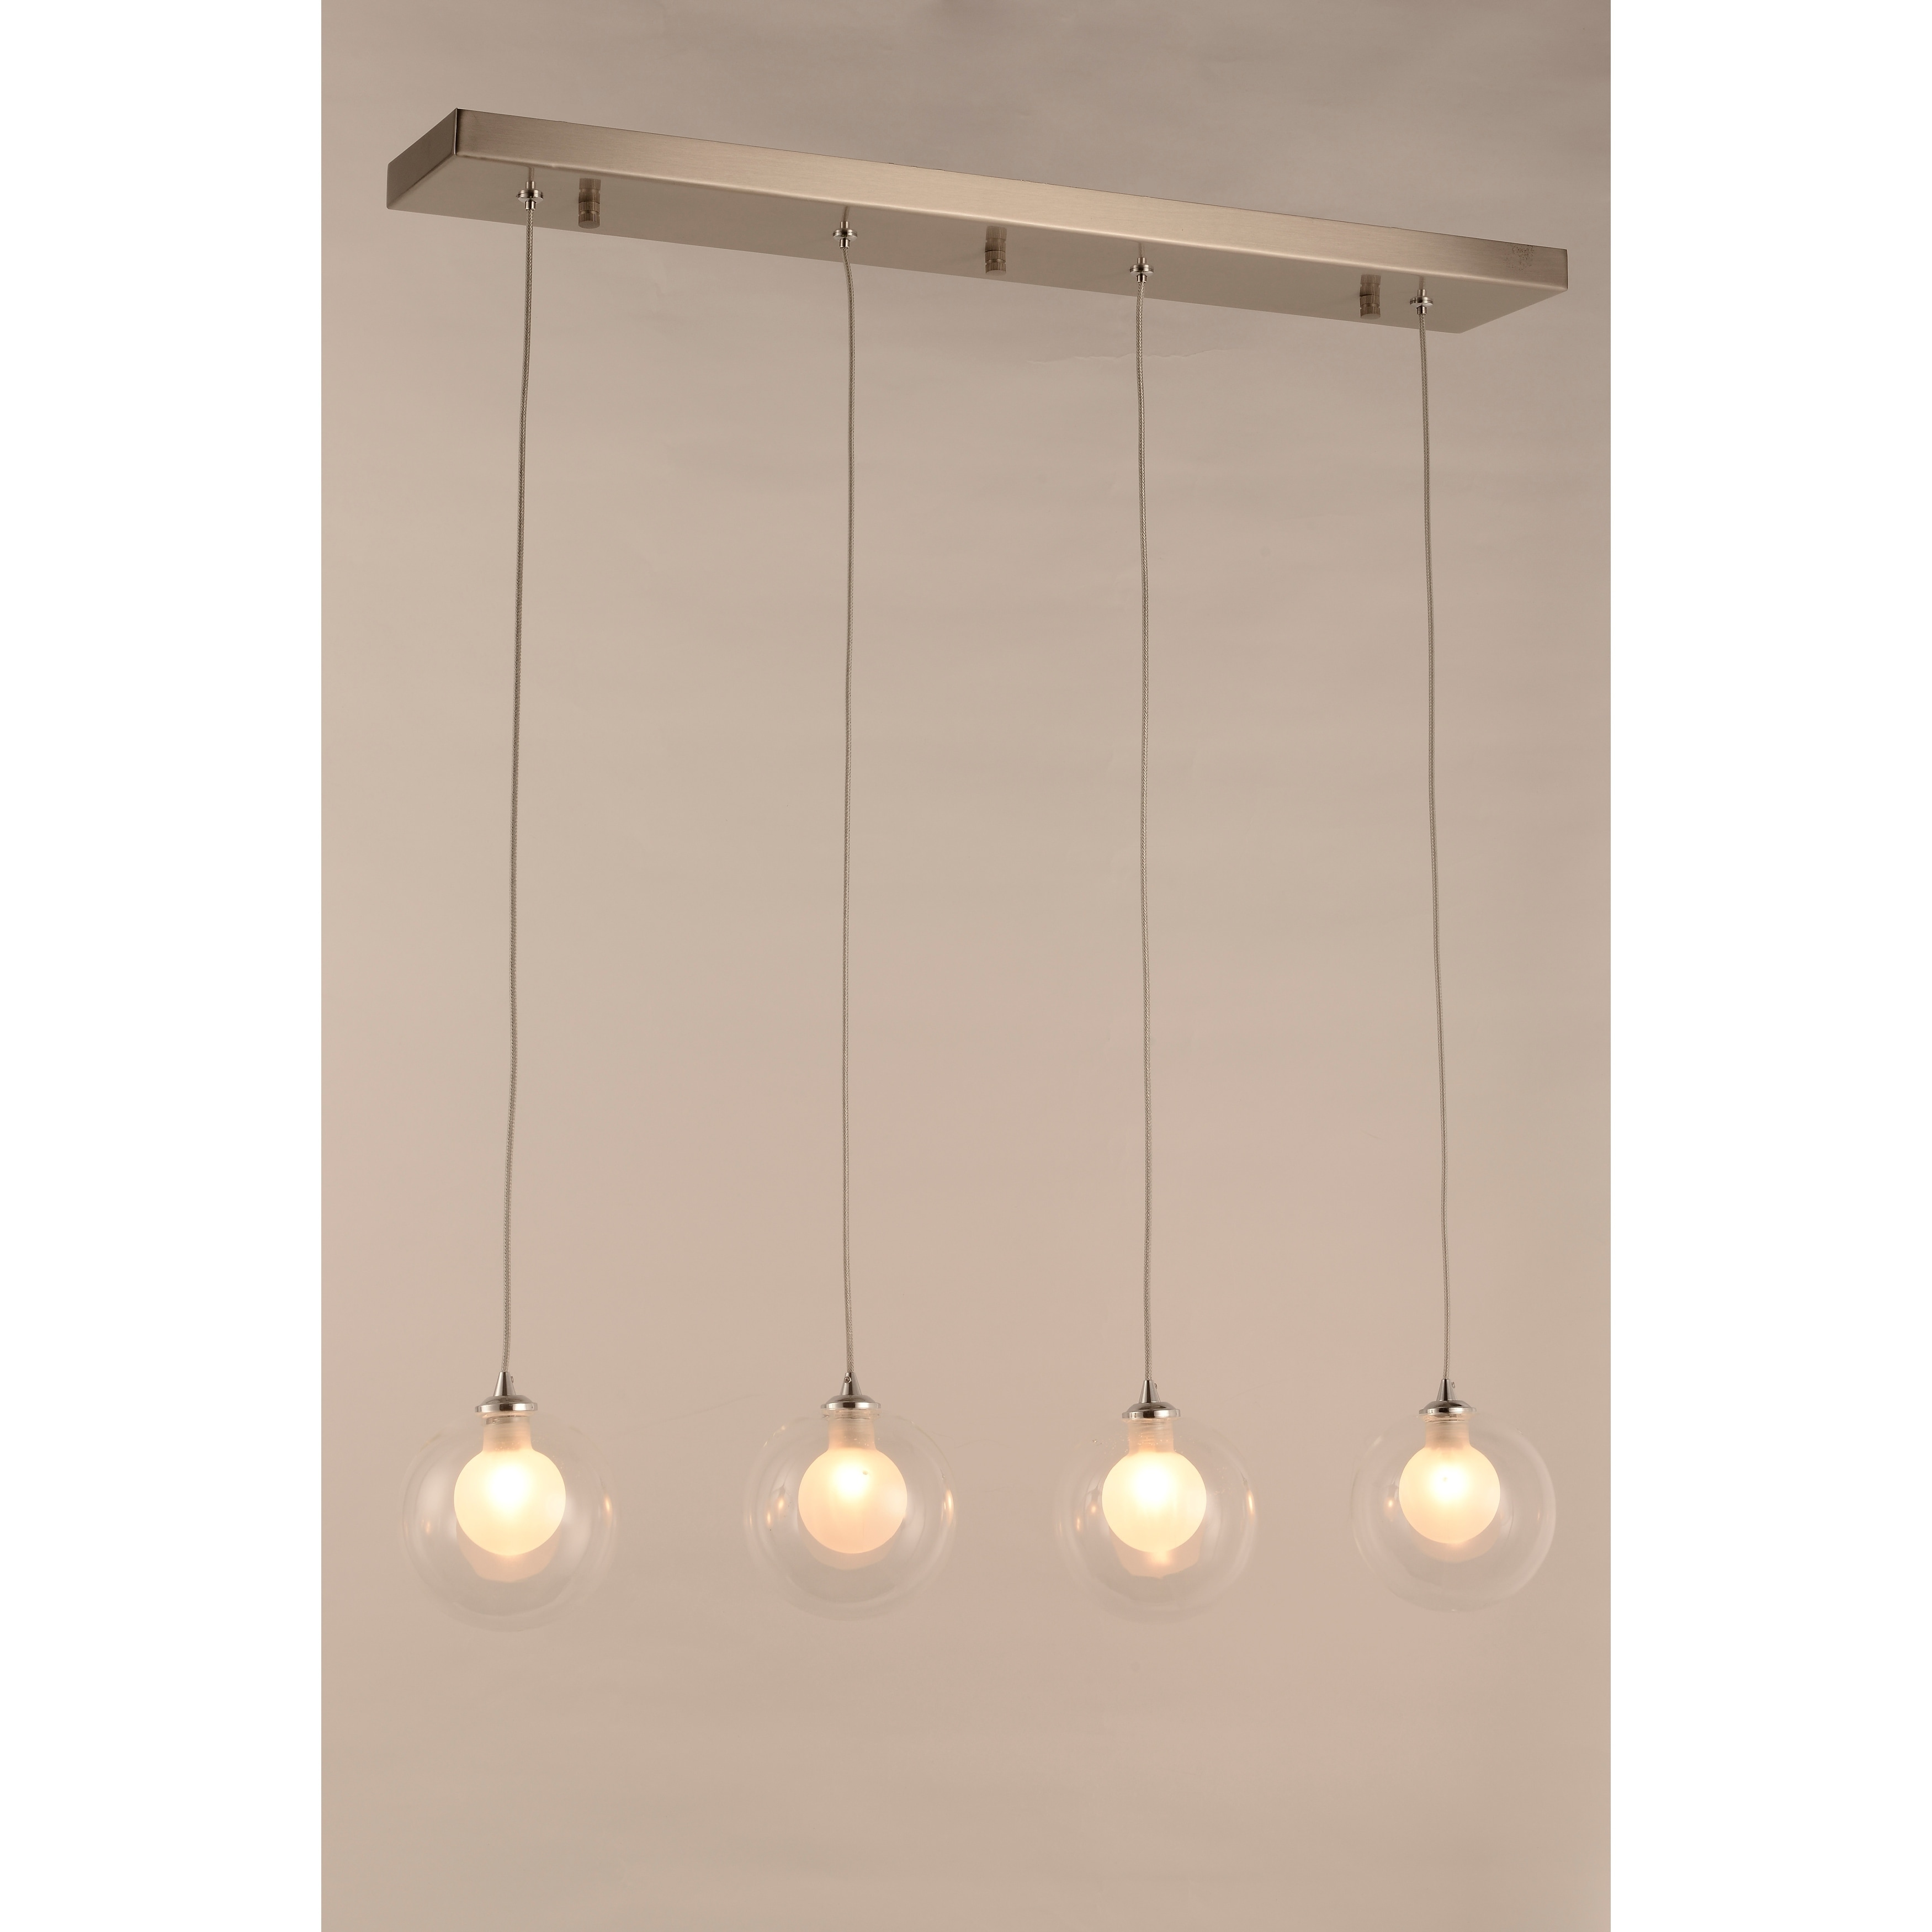 Moulin 4 Light Matte Nickel Halogen Led Clear And Frosted Glass Ball Kitchen Island Linear Pendant Light Large Pendant Overstock 30430030